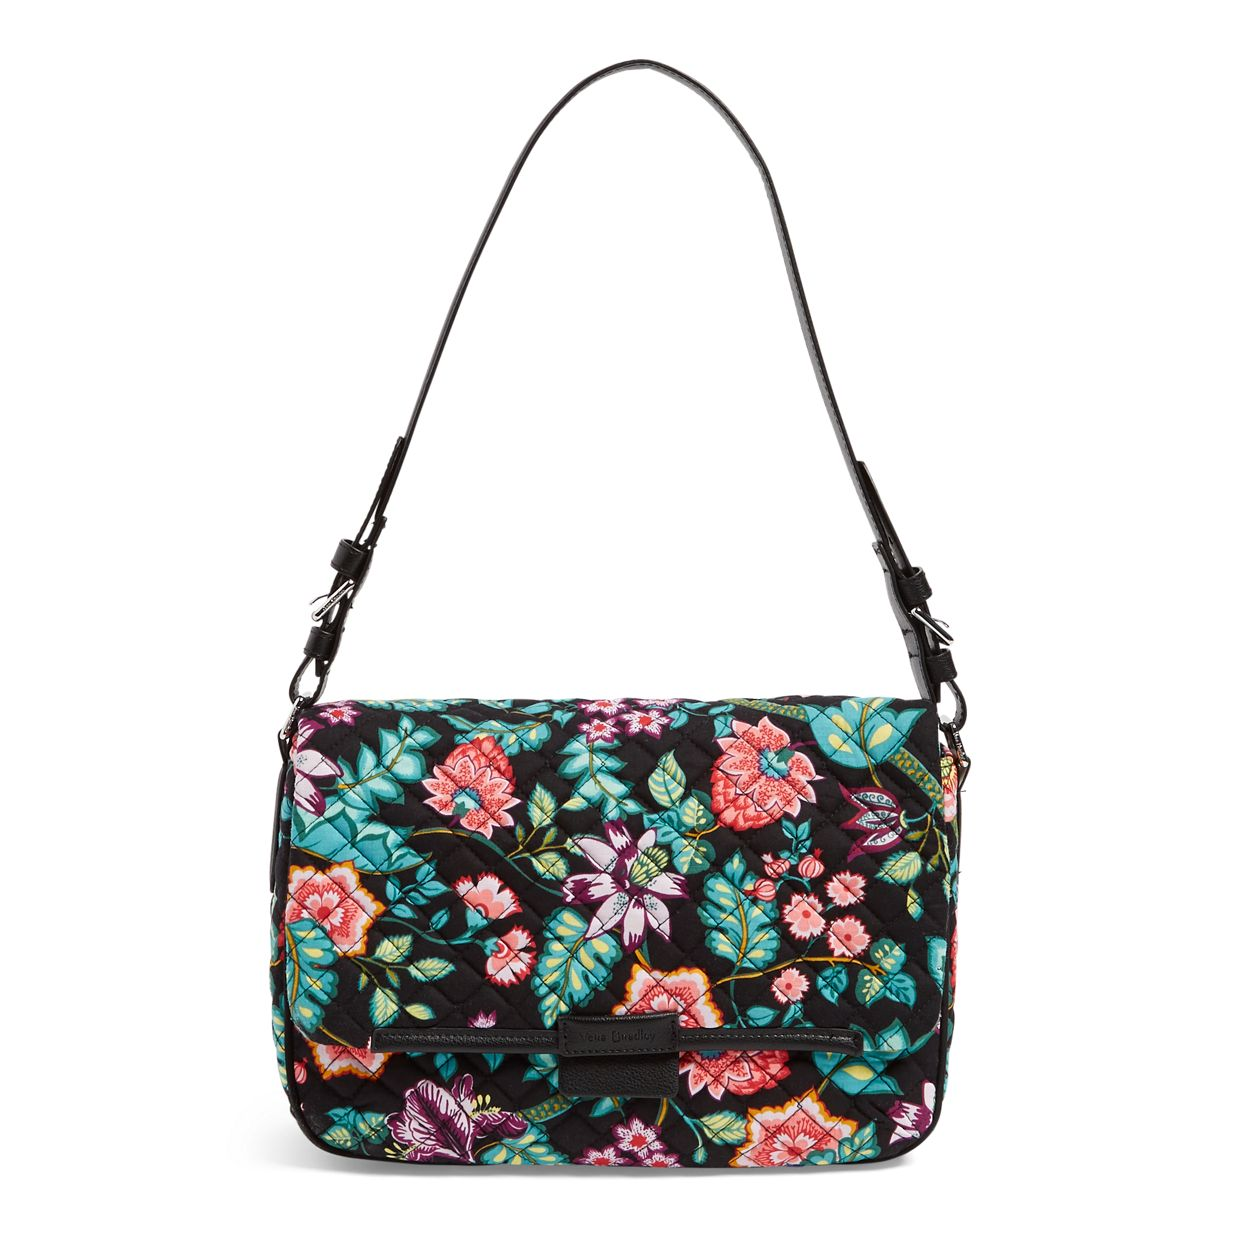 e859432712fa Image of Iconic Shoulder Bag in Vines Floral ...